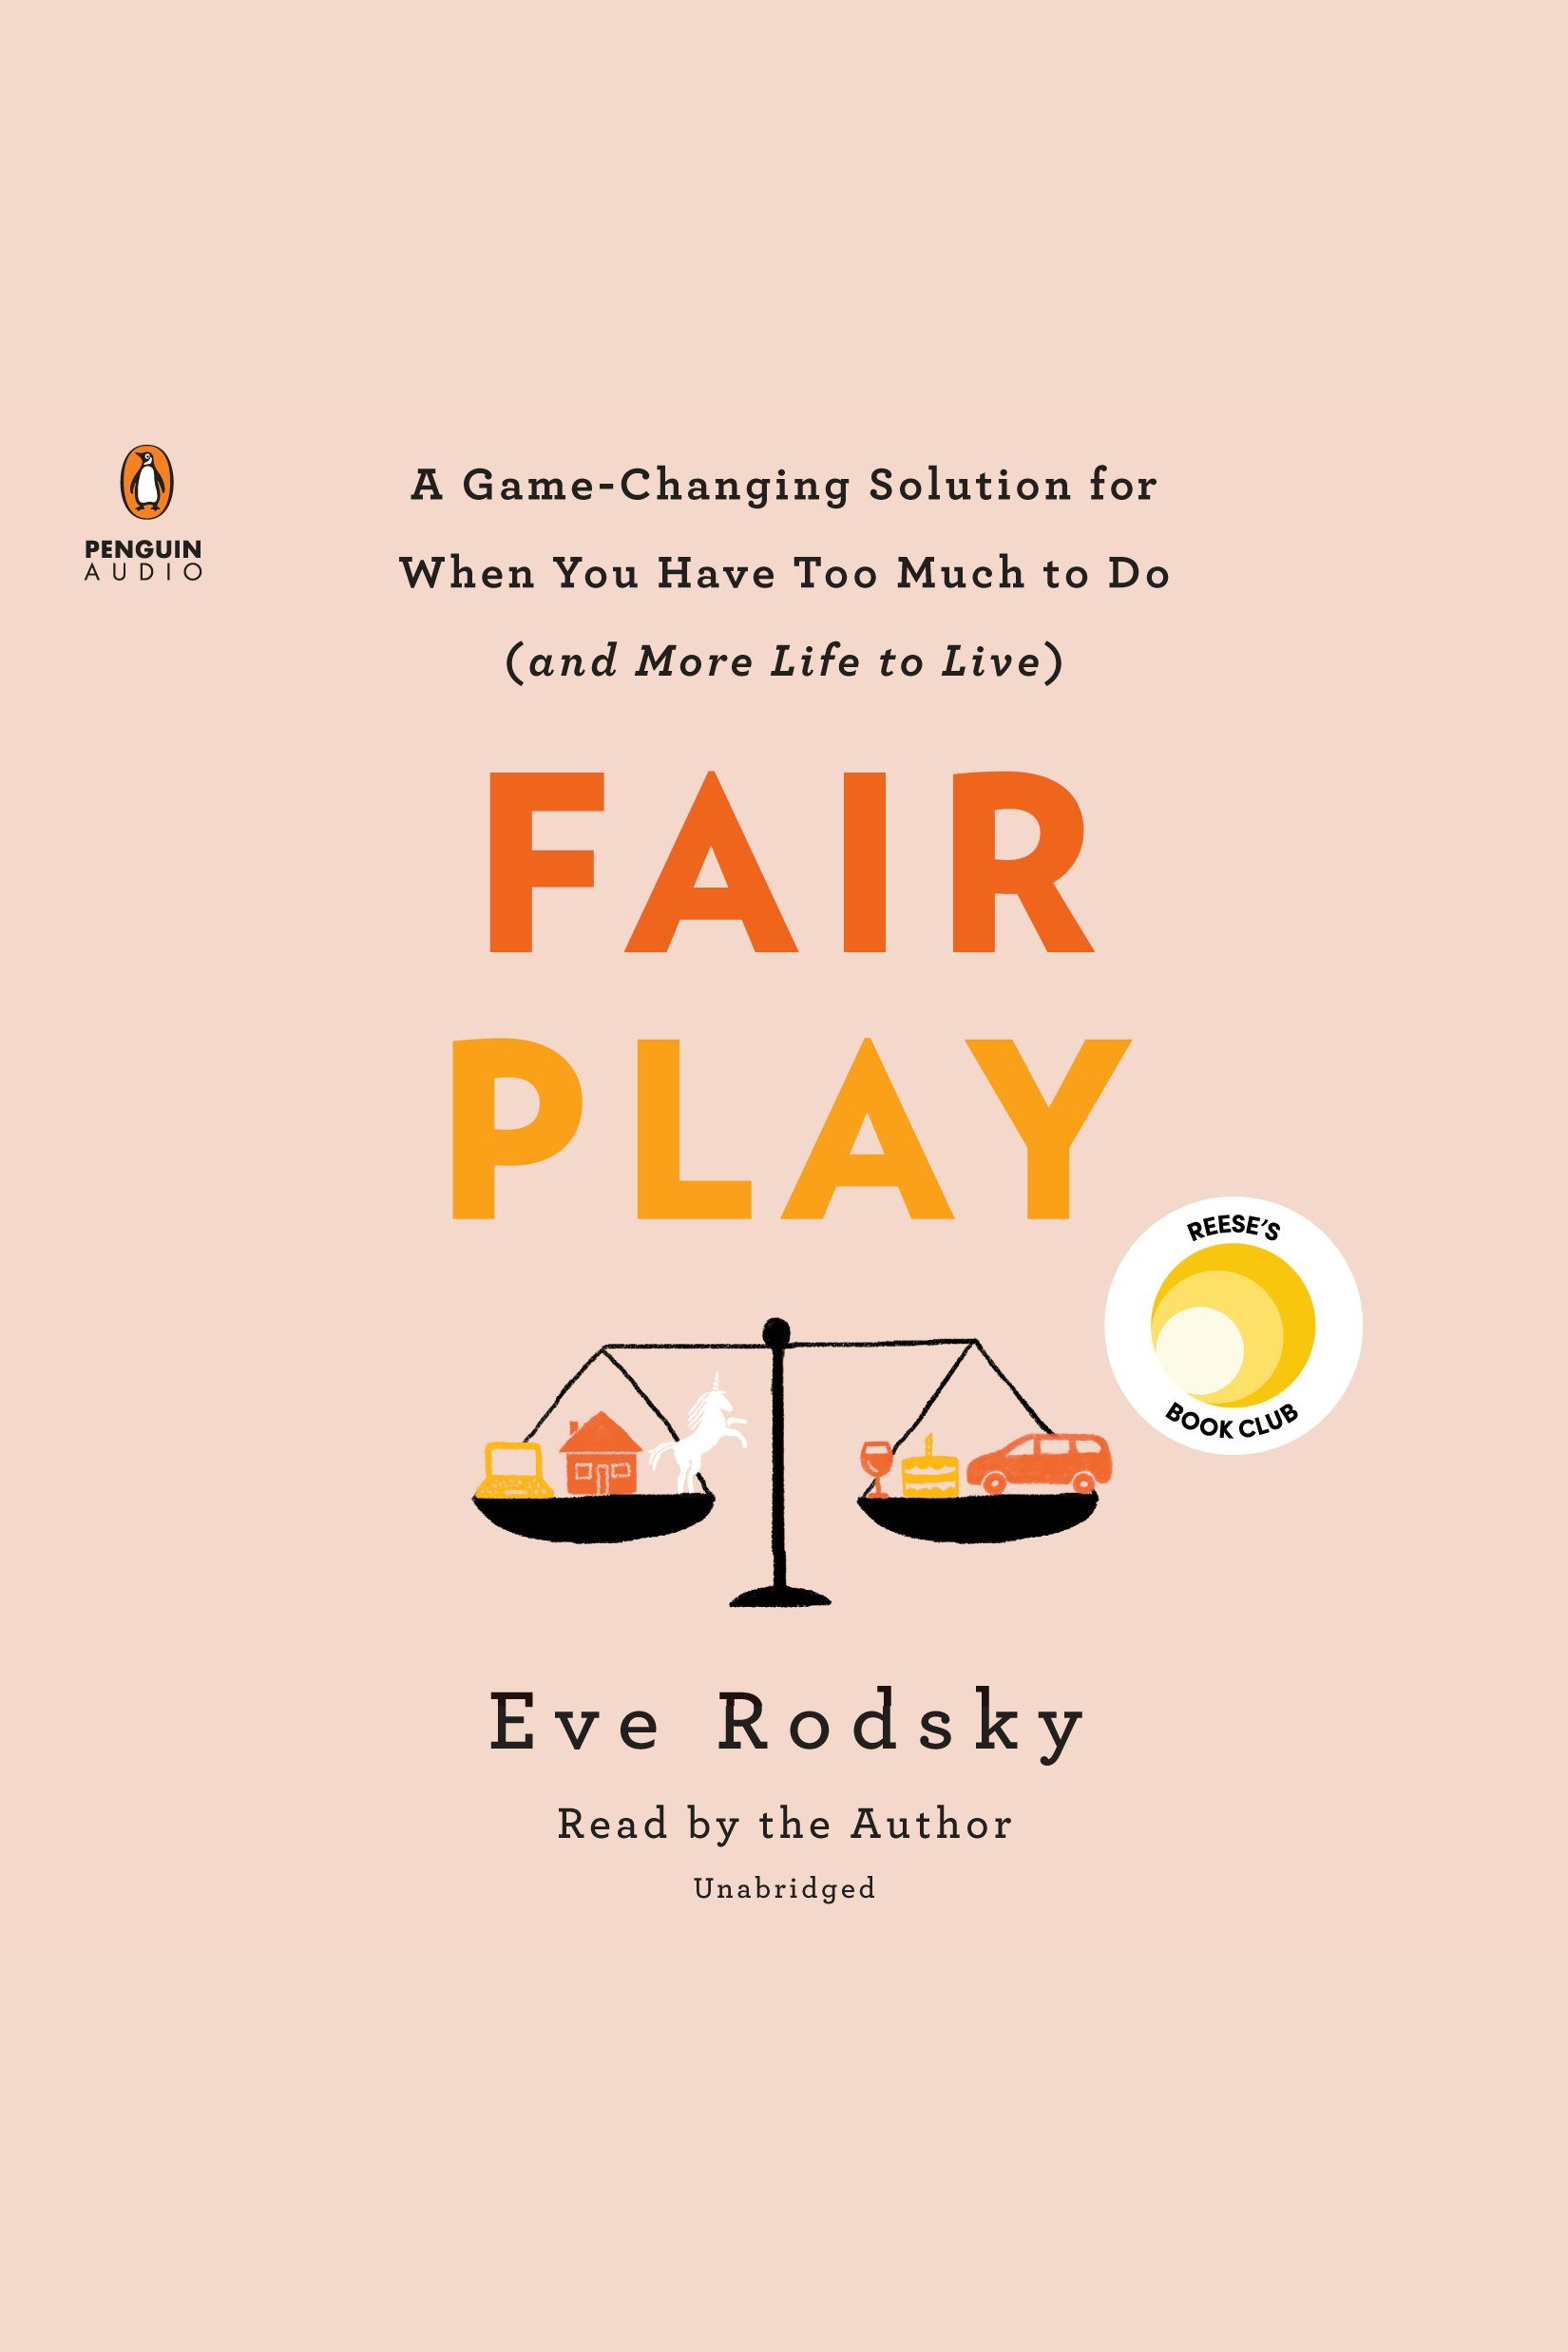 Fair Play A Game-Changing Solution for When You Have Too Much to Do (and More Life to Live)